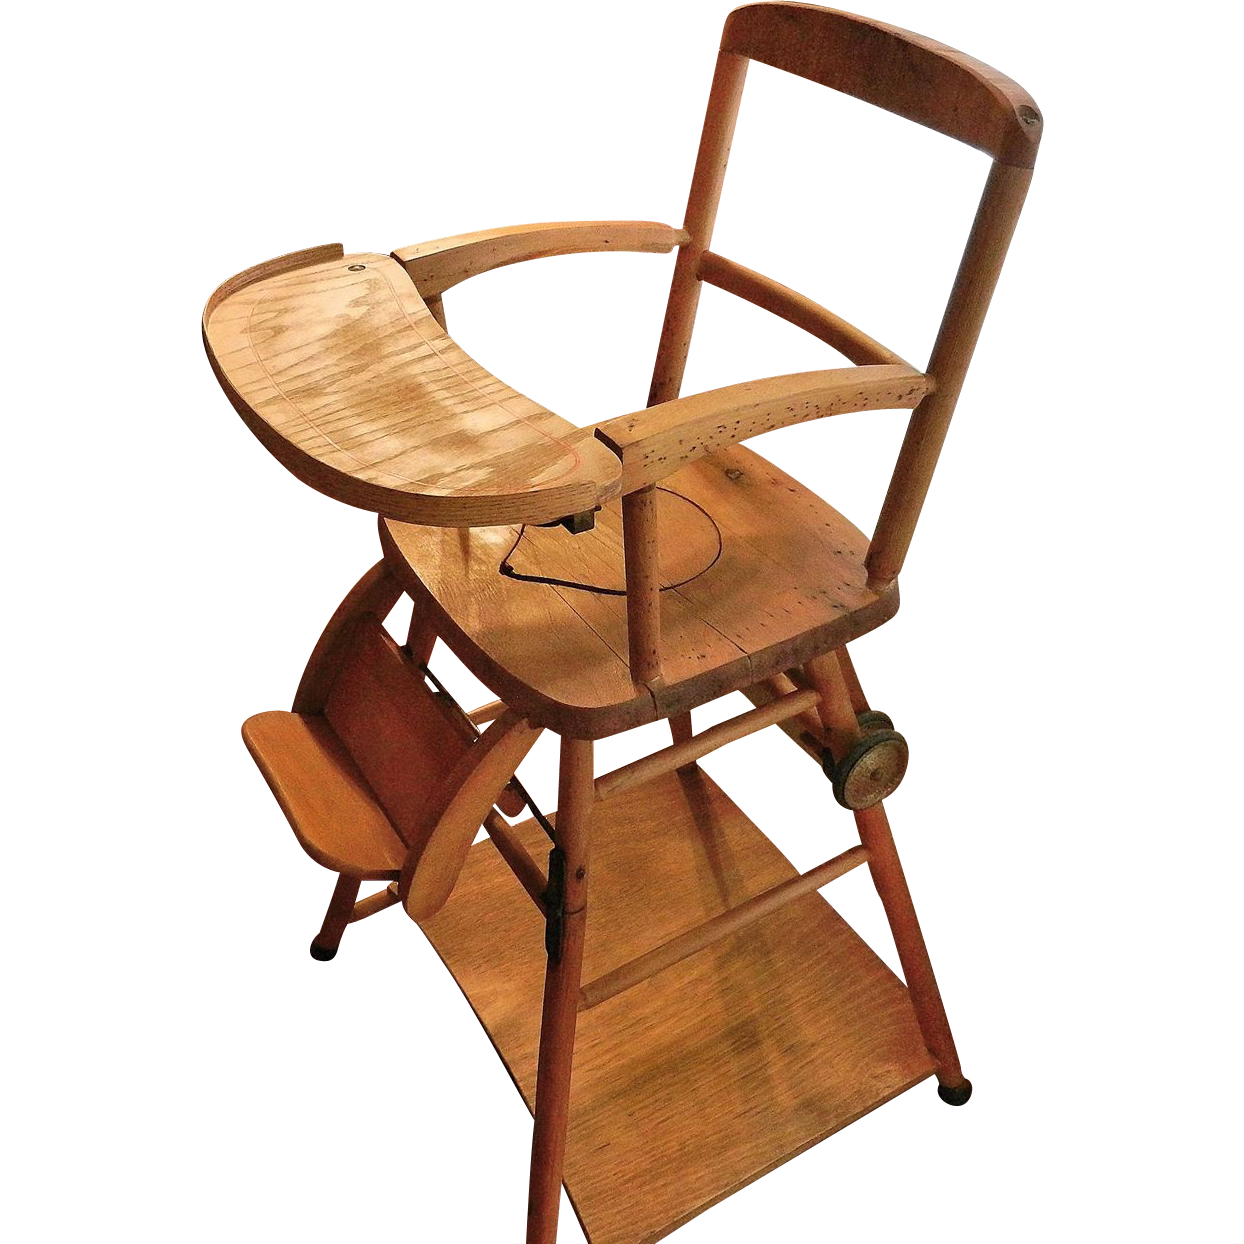 Vintage Wooden High Chair Potty And Play In One